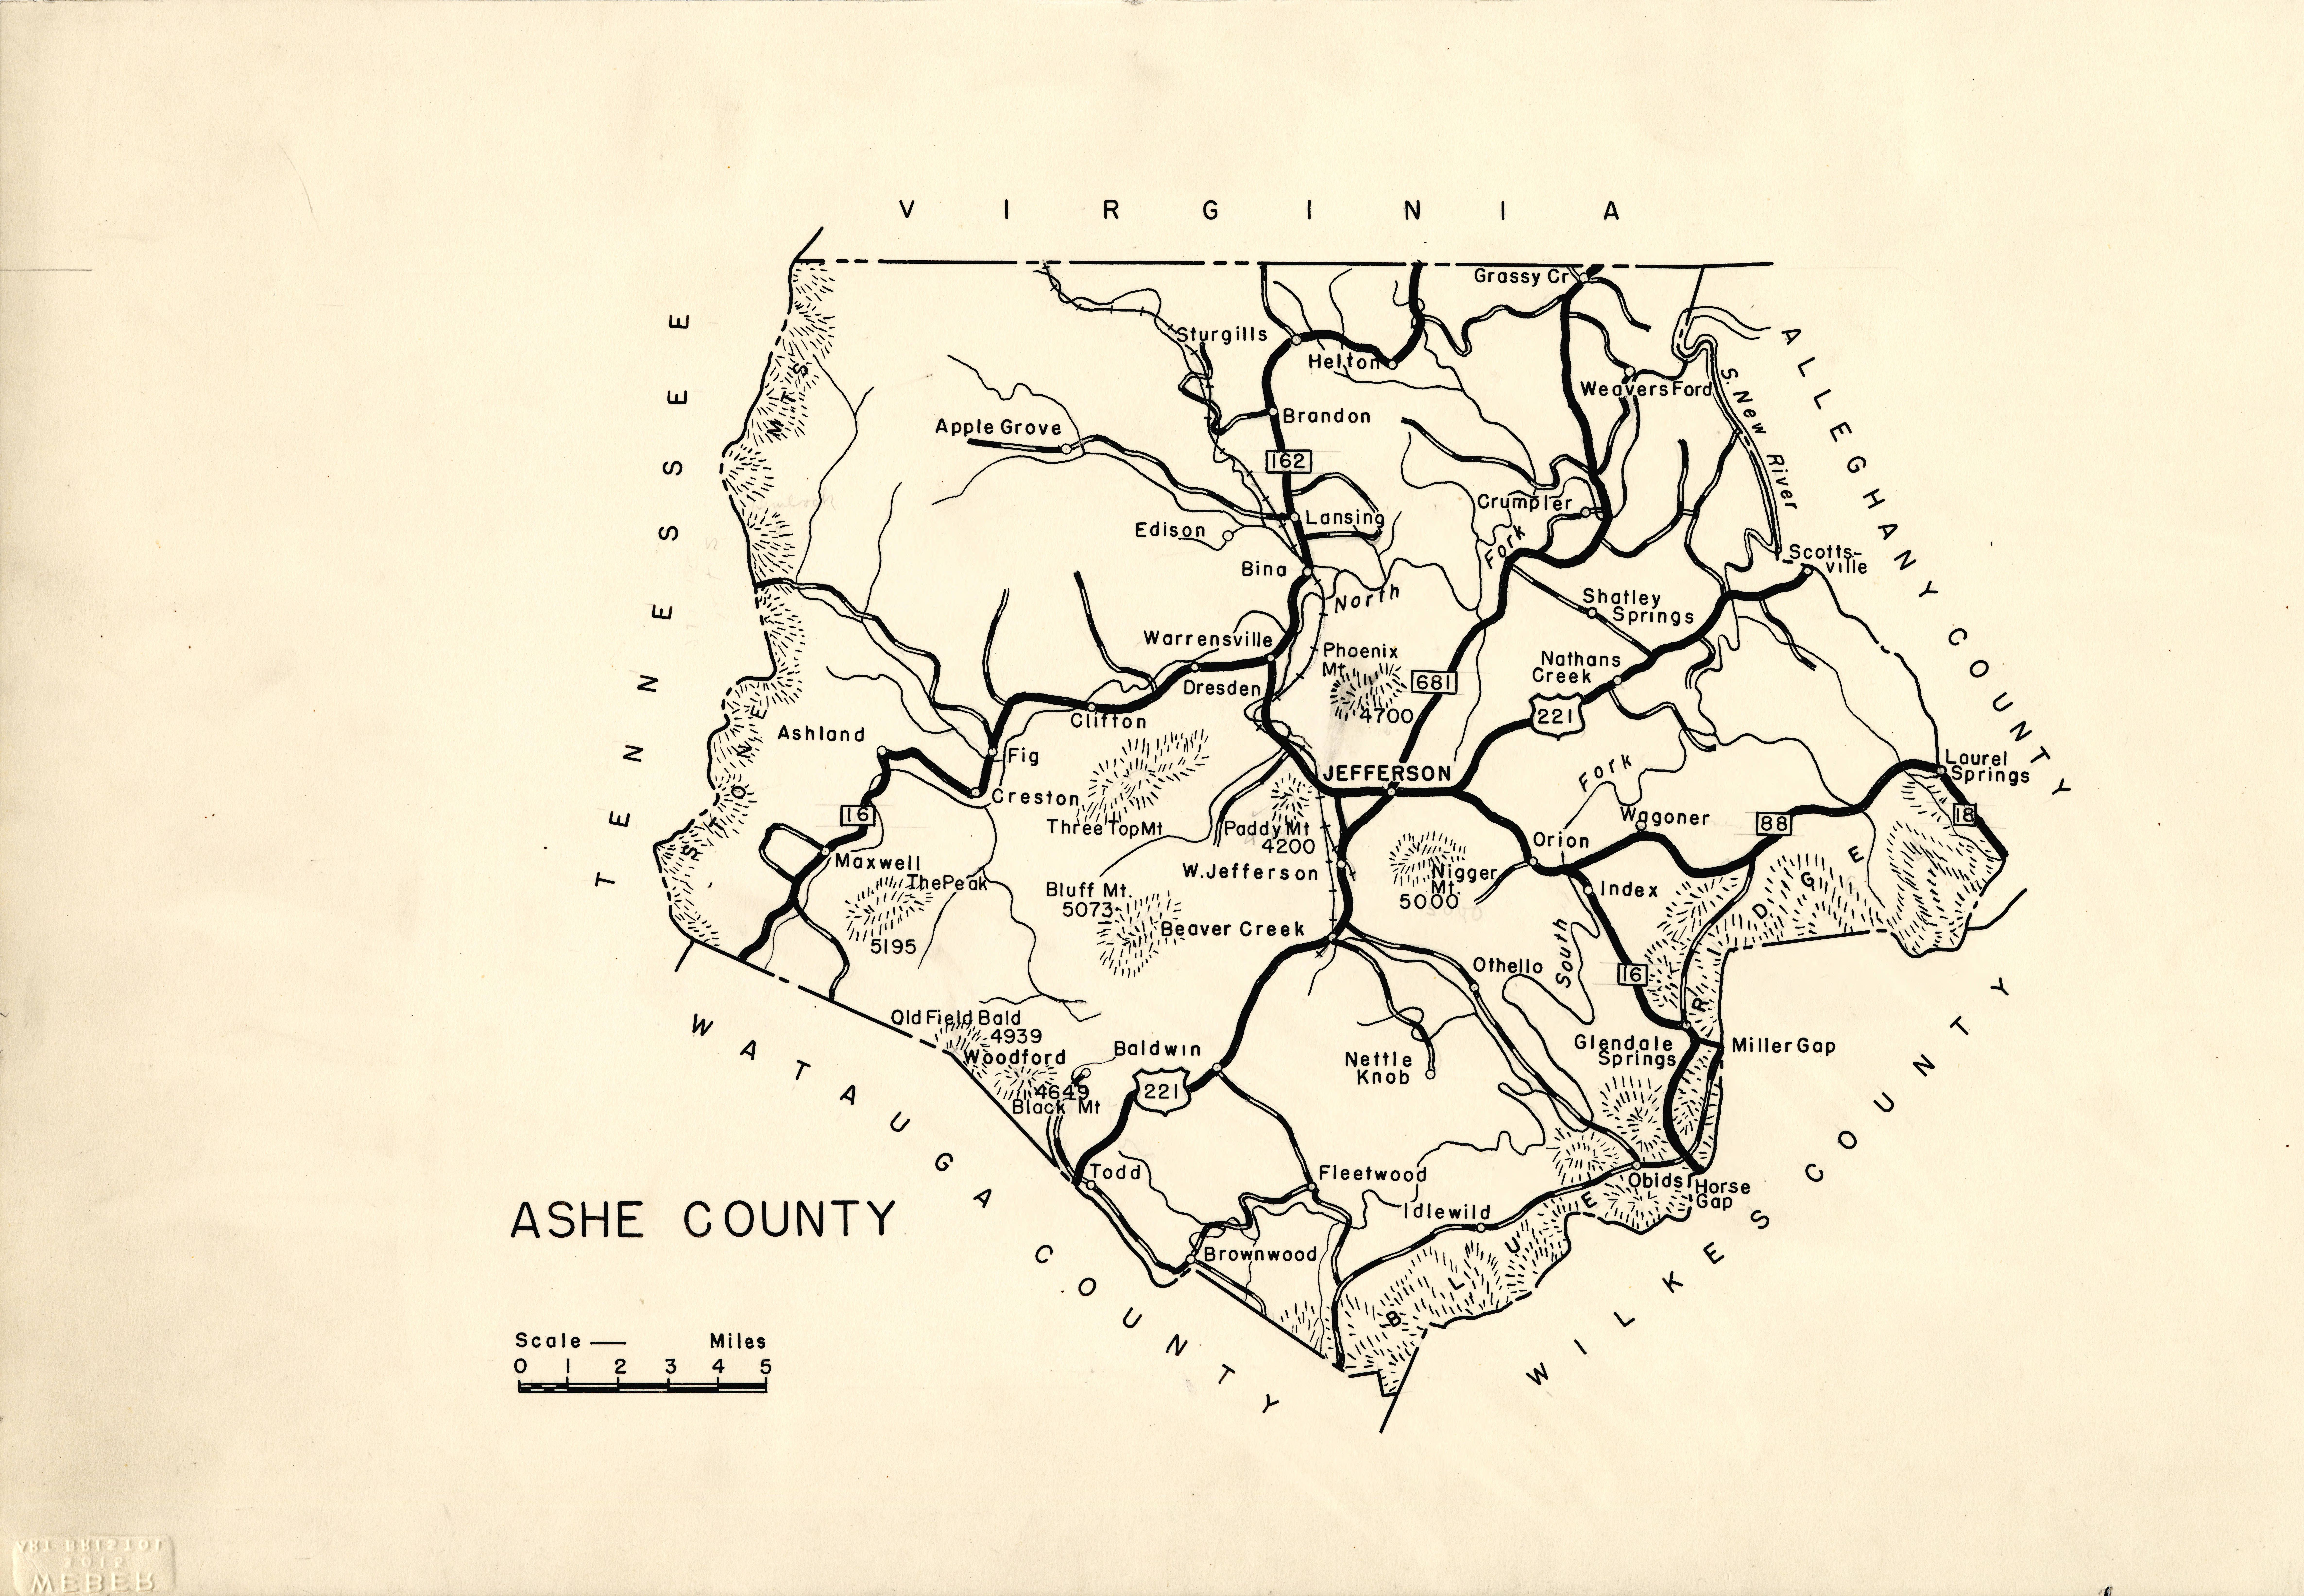 Pin By Foreverythingnc On Ashe County Nc North Carolina Map Nc